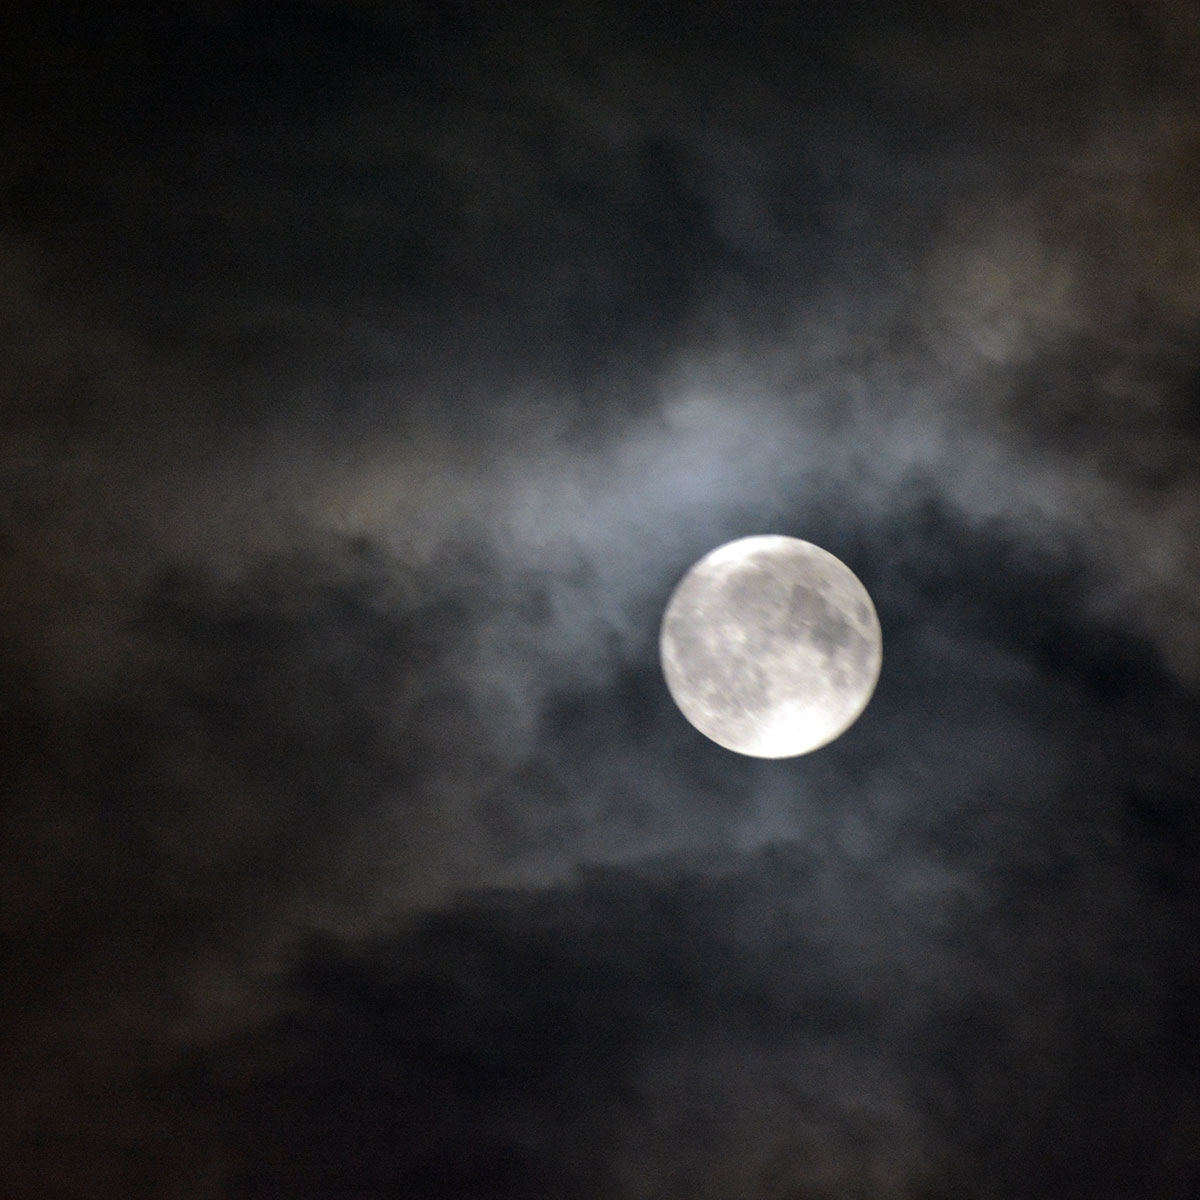 National Moon Day - July 20, 2019 | National Today intended for Moon July 21 Day Malayalam